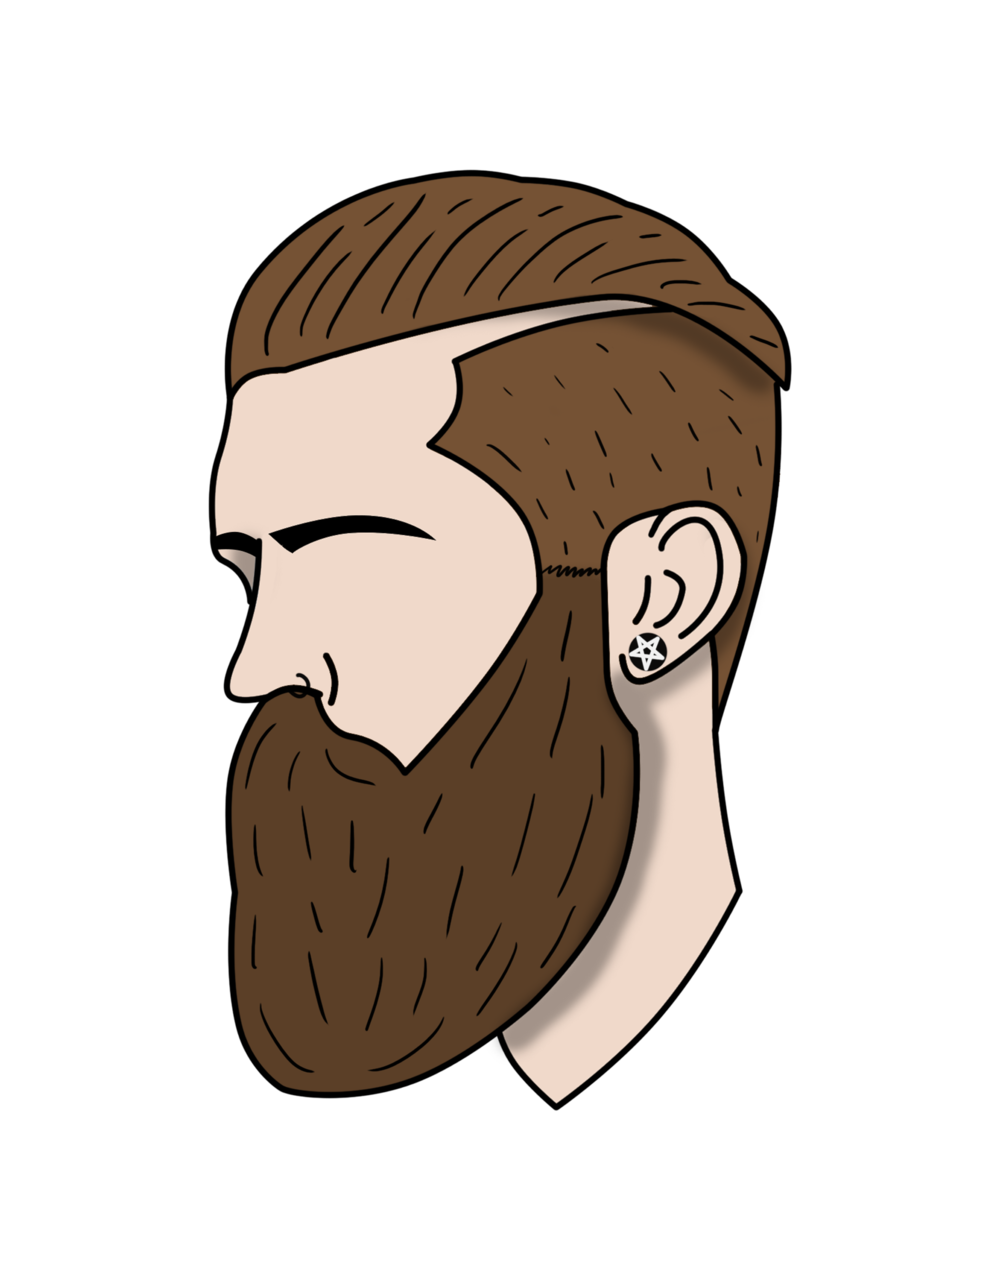 Owyn-Degnen_Bearded-hipster-guy-1.png